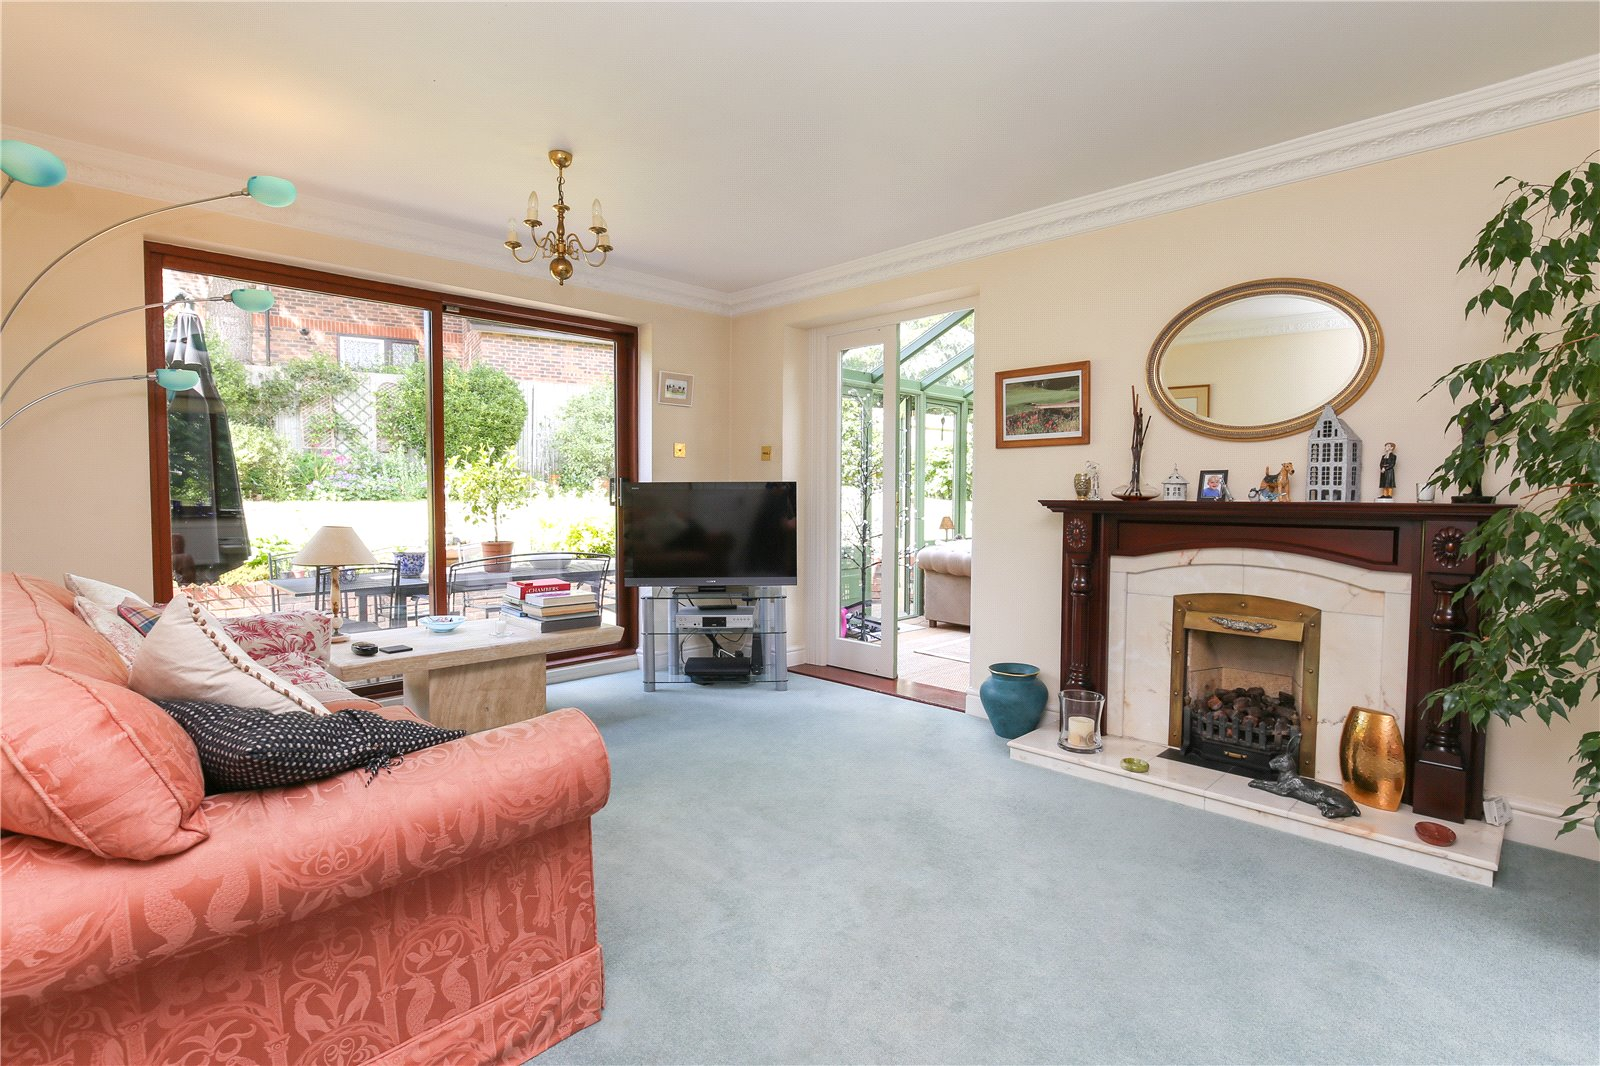 Cj Hole Westbury On Trym 5 Bedroom House For Sale In The